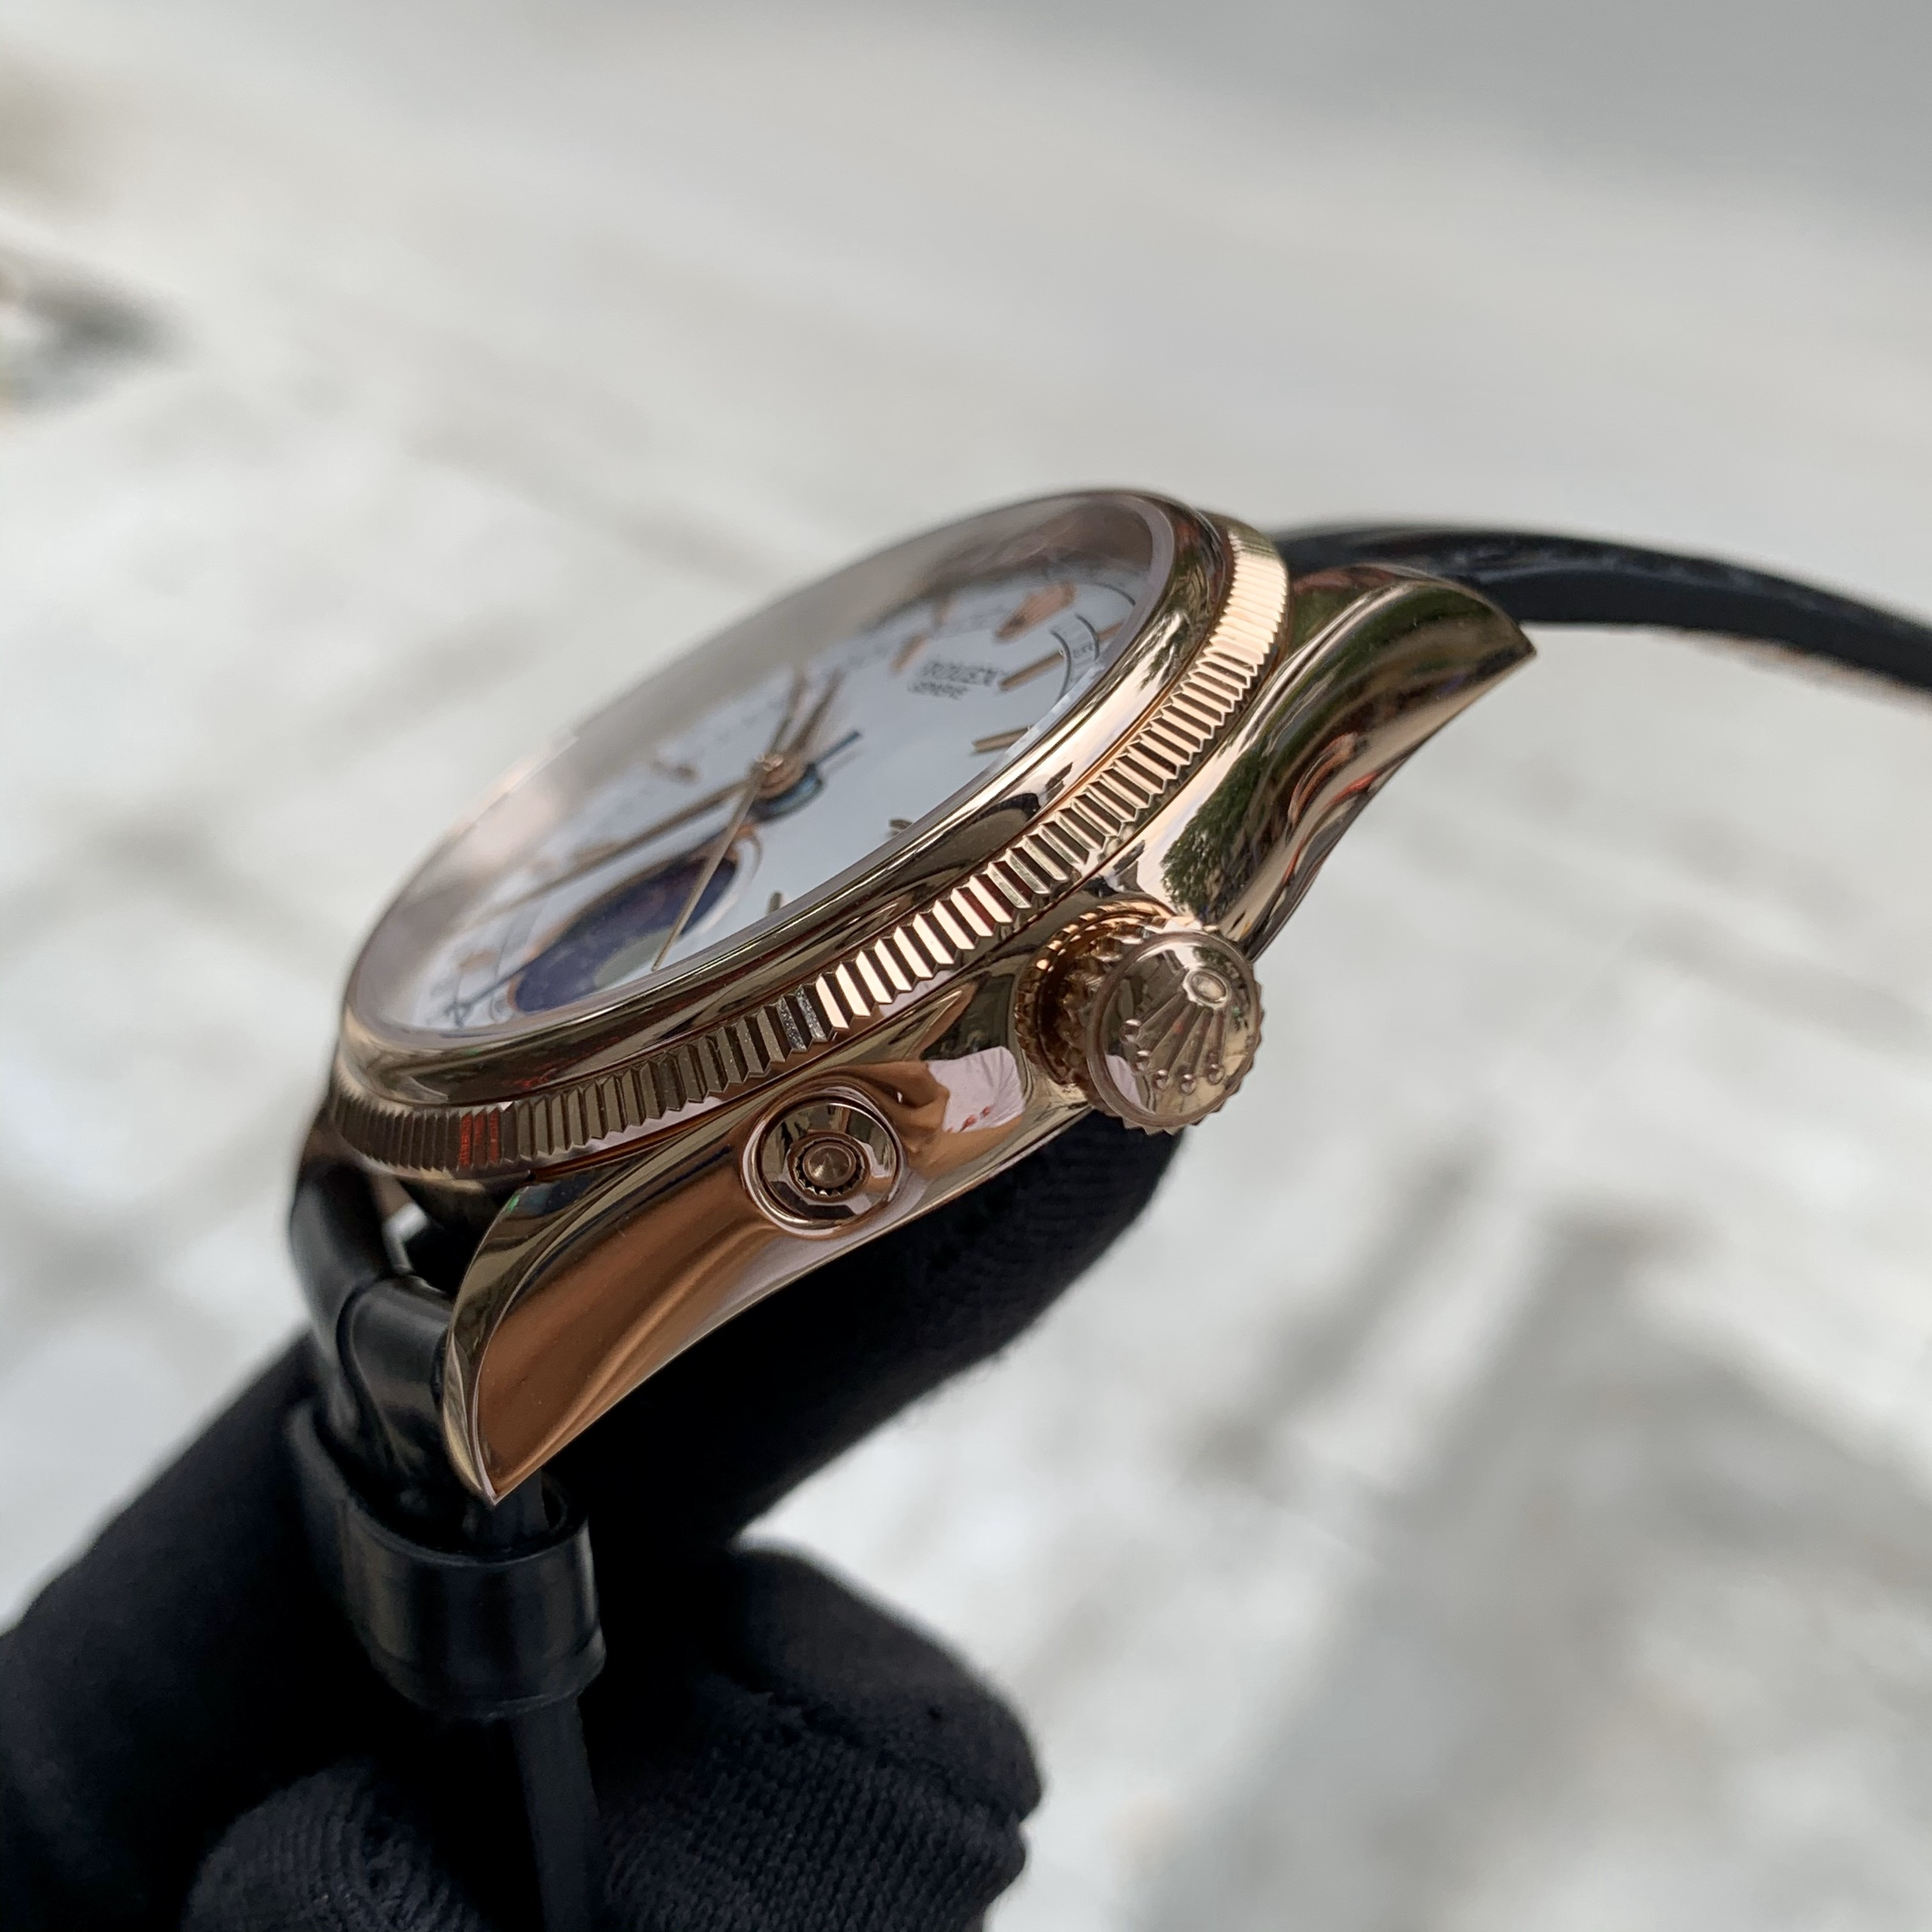 Đồng hồ Rolex Fake 1-1 Cellini Moonphase 50535